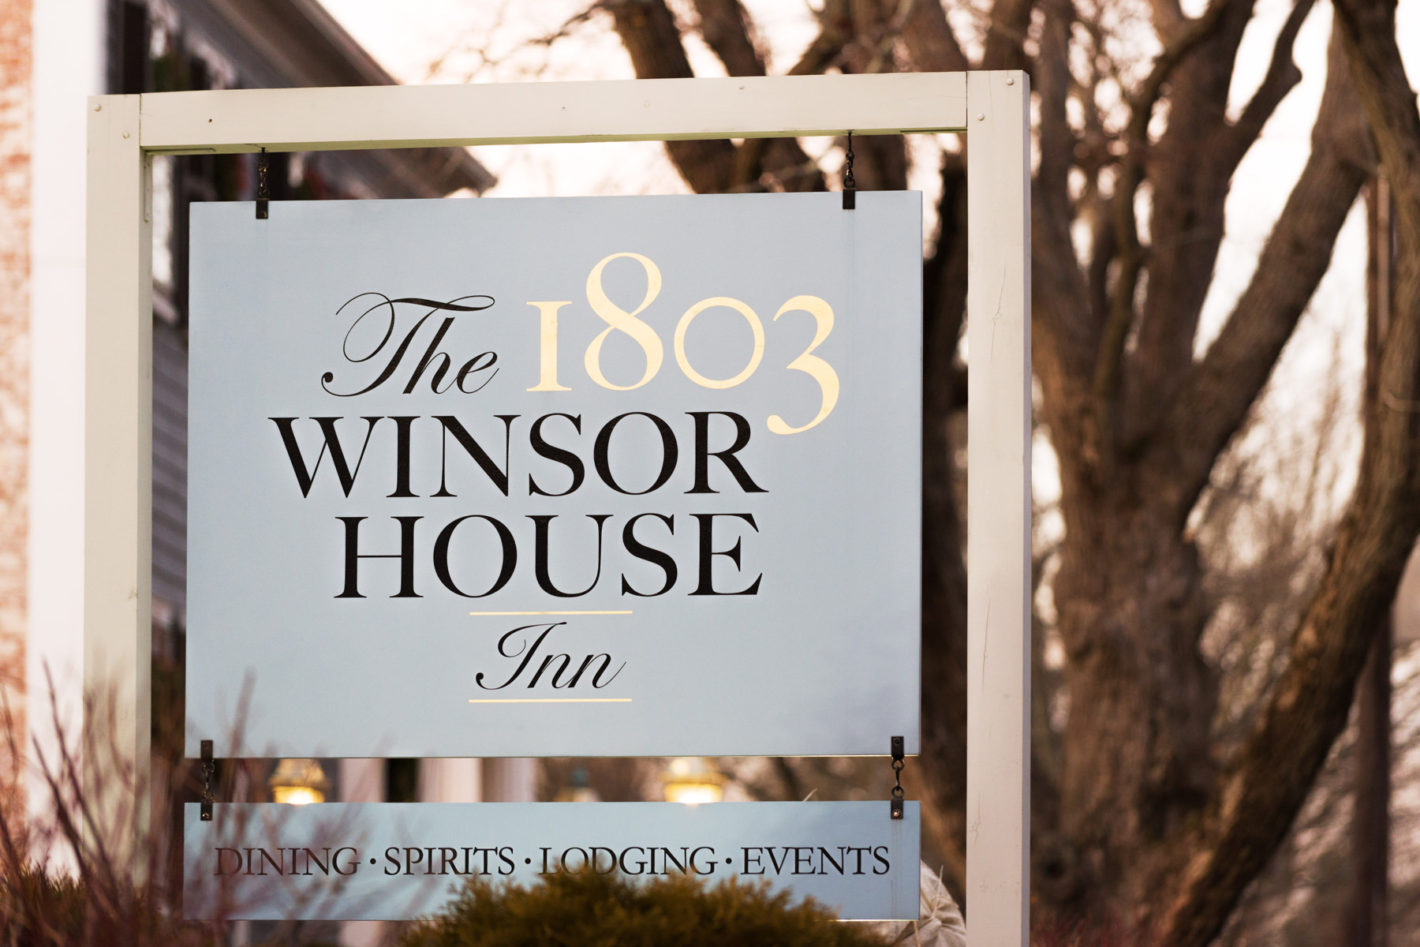 The 1803 Winsor House in Duxbury, where Scott asked Danni to marry him.